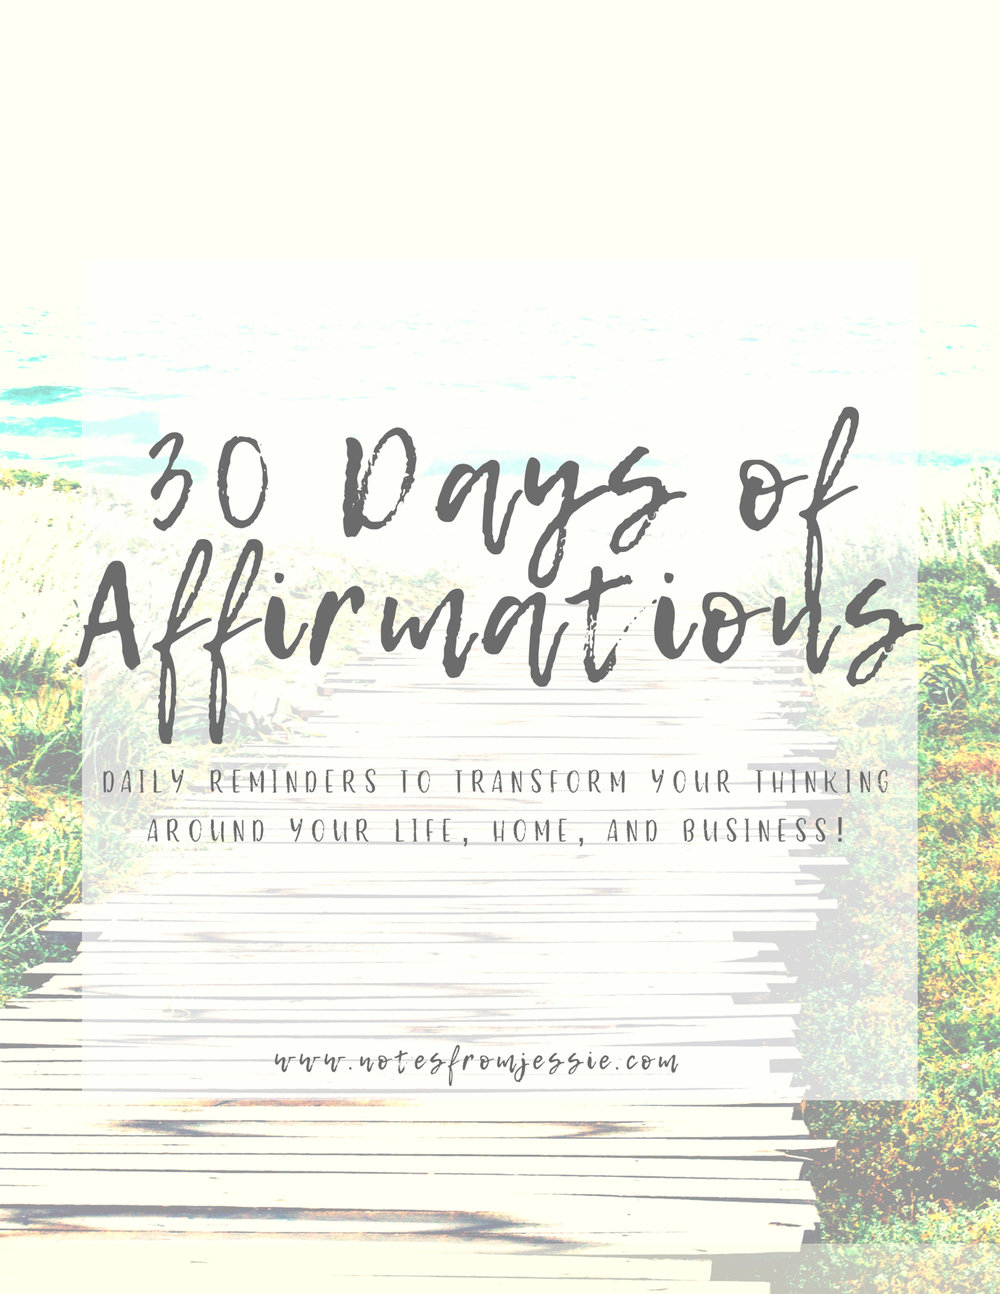 Get your instant download of the 30 days full of affirmations for your life, home, and business! - And don't forget to check your email inbox (and maybe spam folder) for some special emails, too!